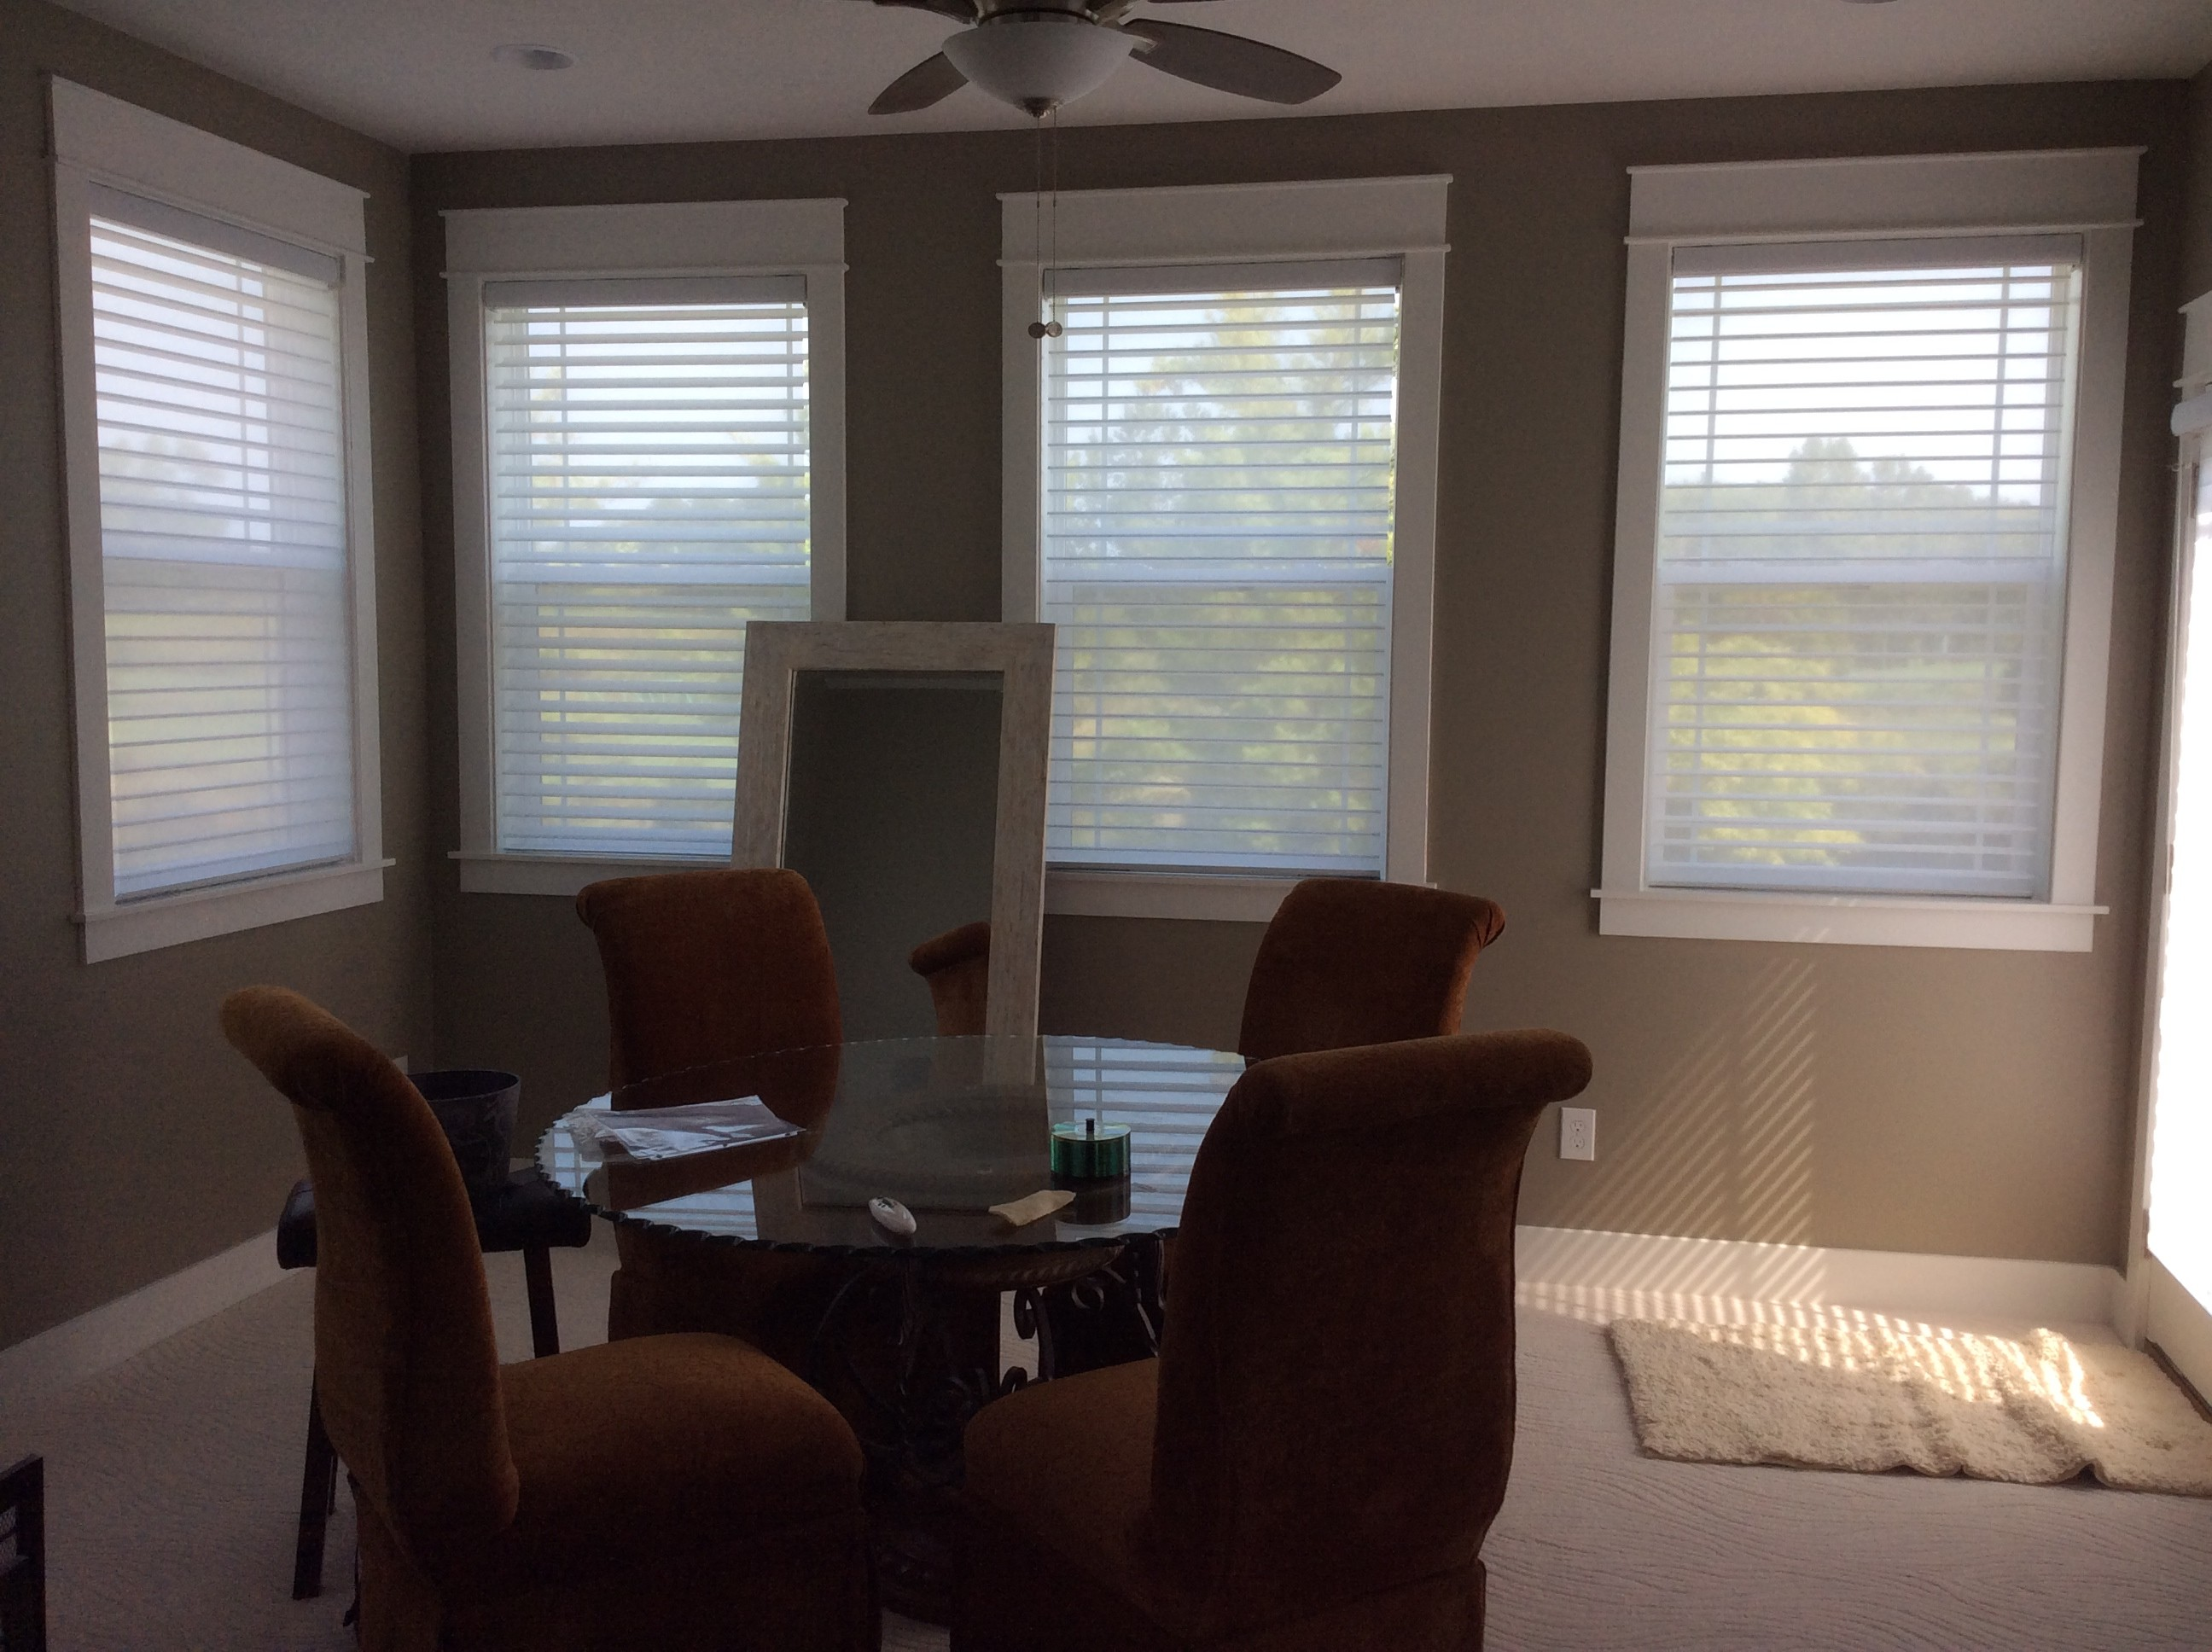 depot tips review mini blinds reviews decor the home window best motorized faux shades wood lowes bali